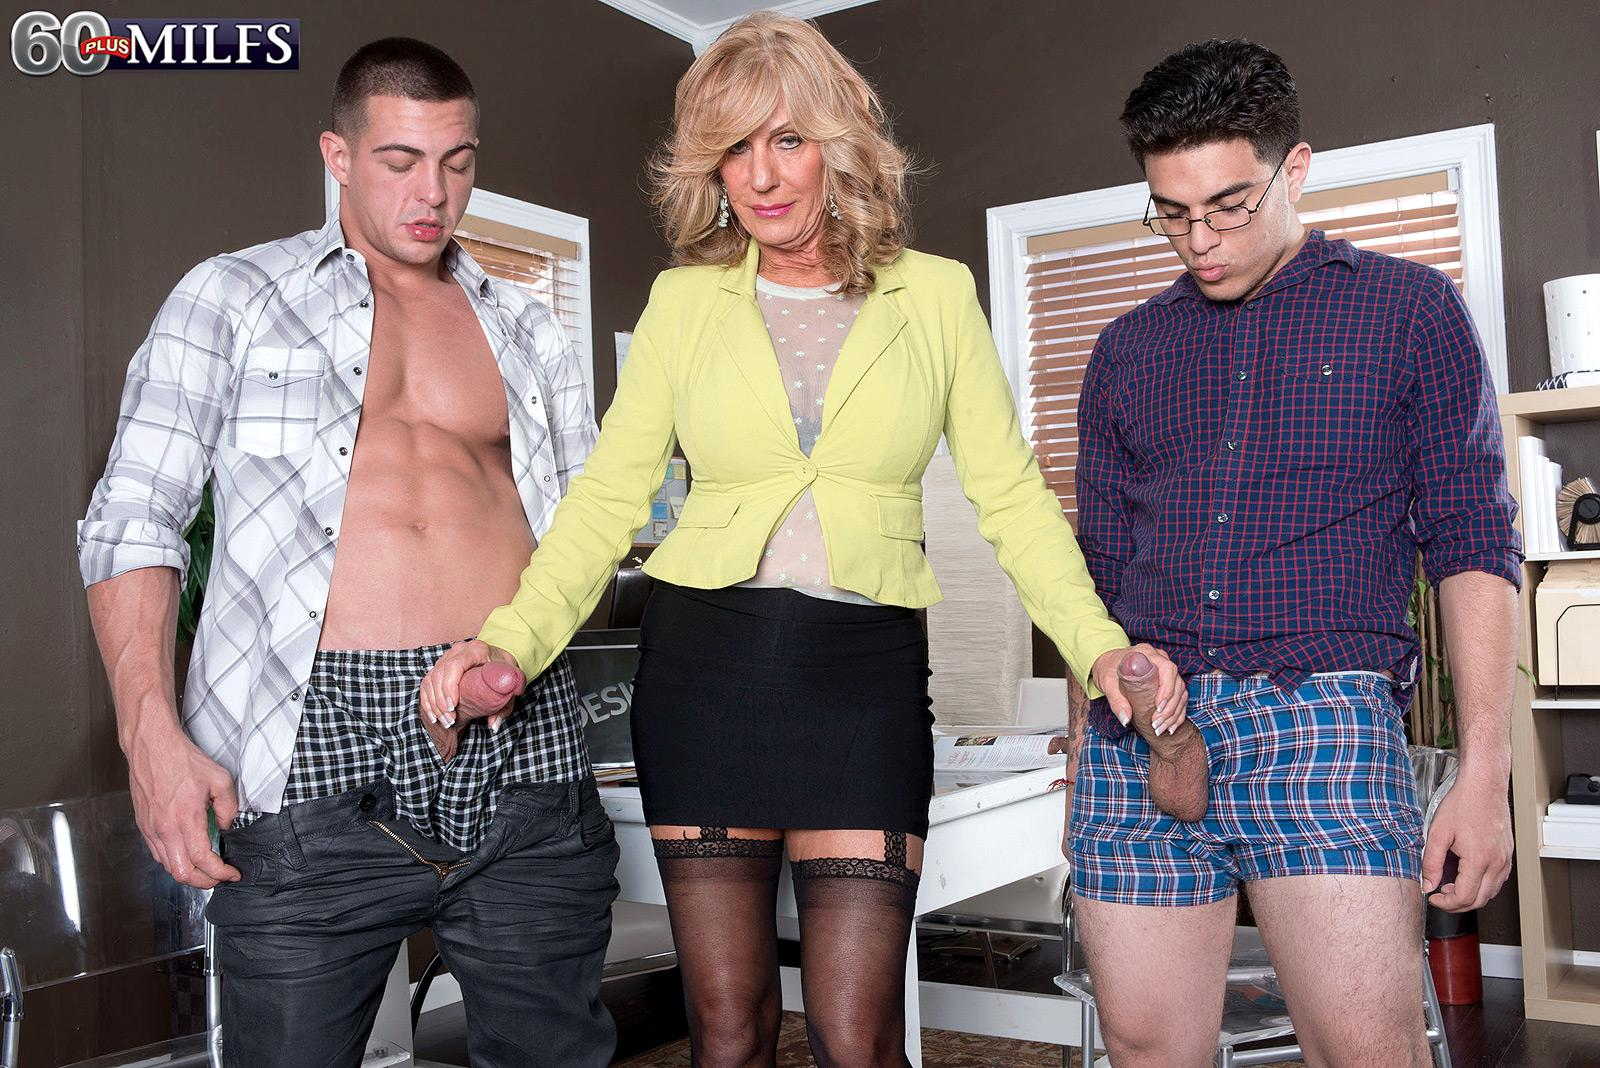 Over sixty light-haired MILF Phoenix Skye fellating big cocks in MMF 3 way